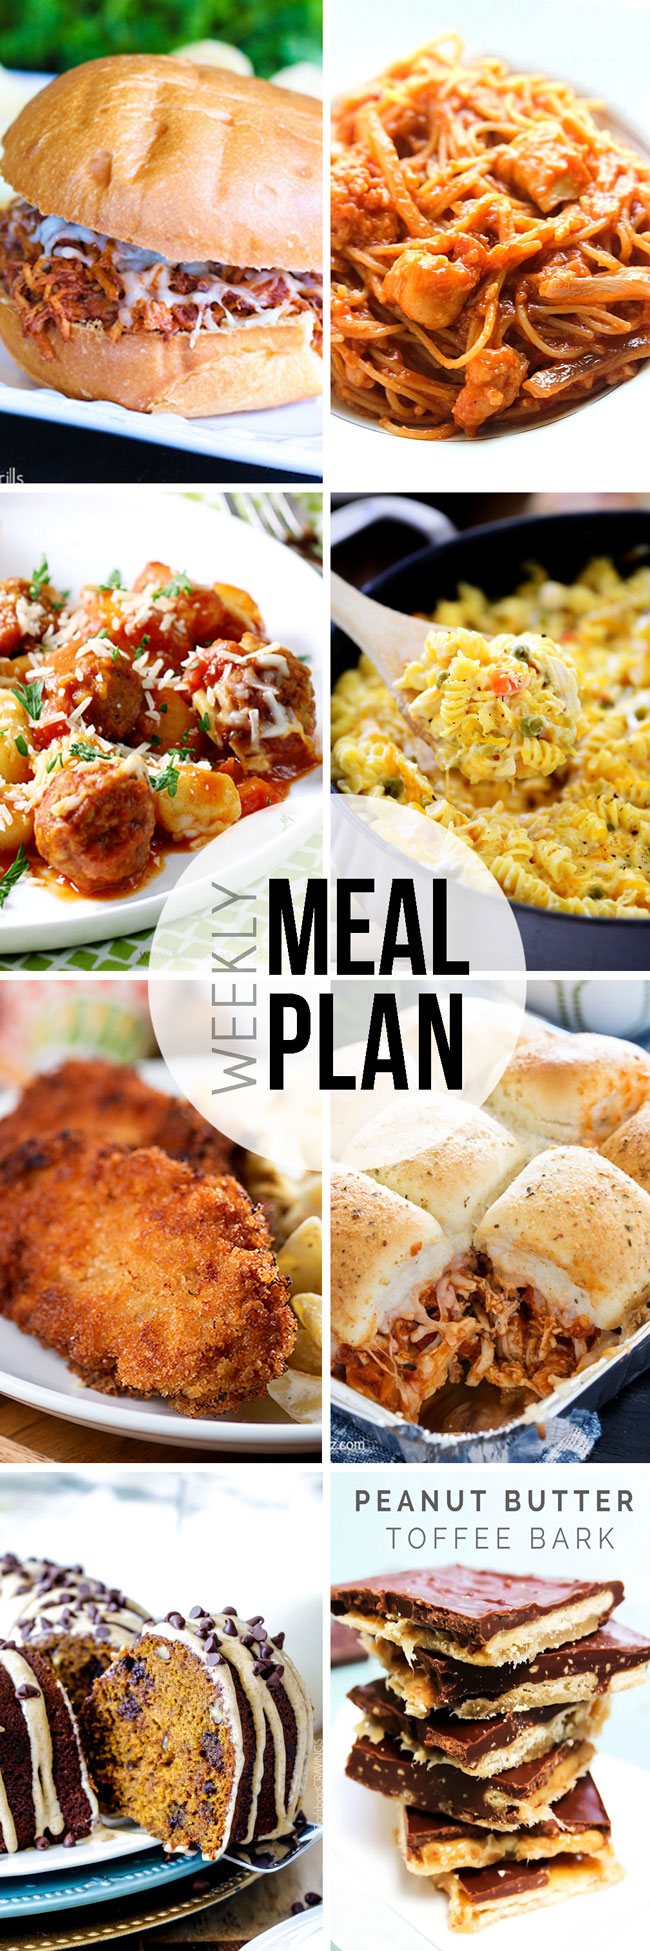 Take the guess work out of meal planning with this fantastic set of recipes, dinners, a breakfast, and 2 desserts to see you through the week.